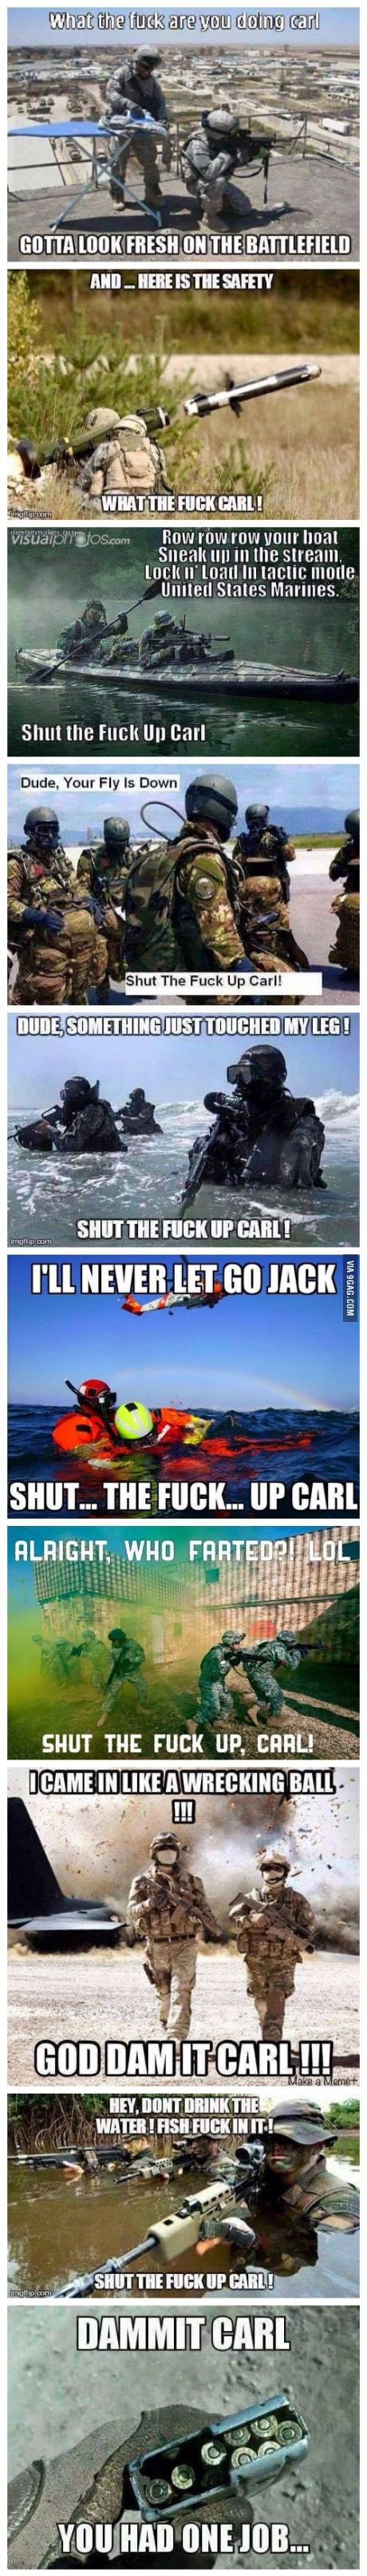 ca25be7da38af1a6616d94e4a3fc8856 the military funny military 716 best jajajajaja images on pinterest funny stuff, funny things